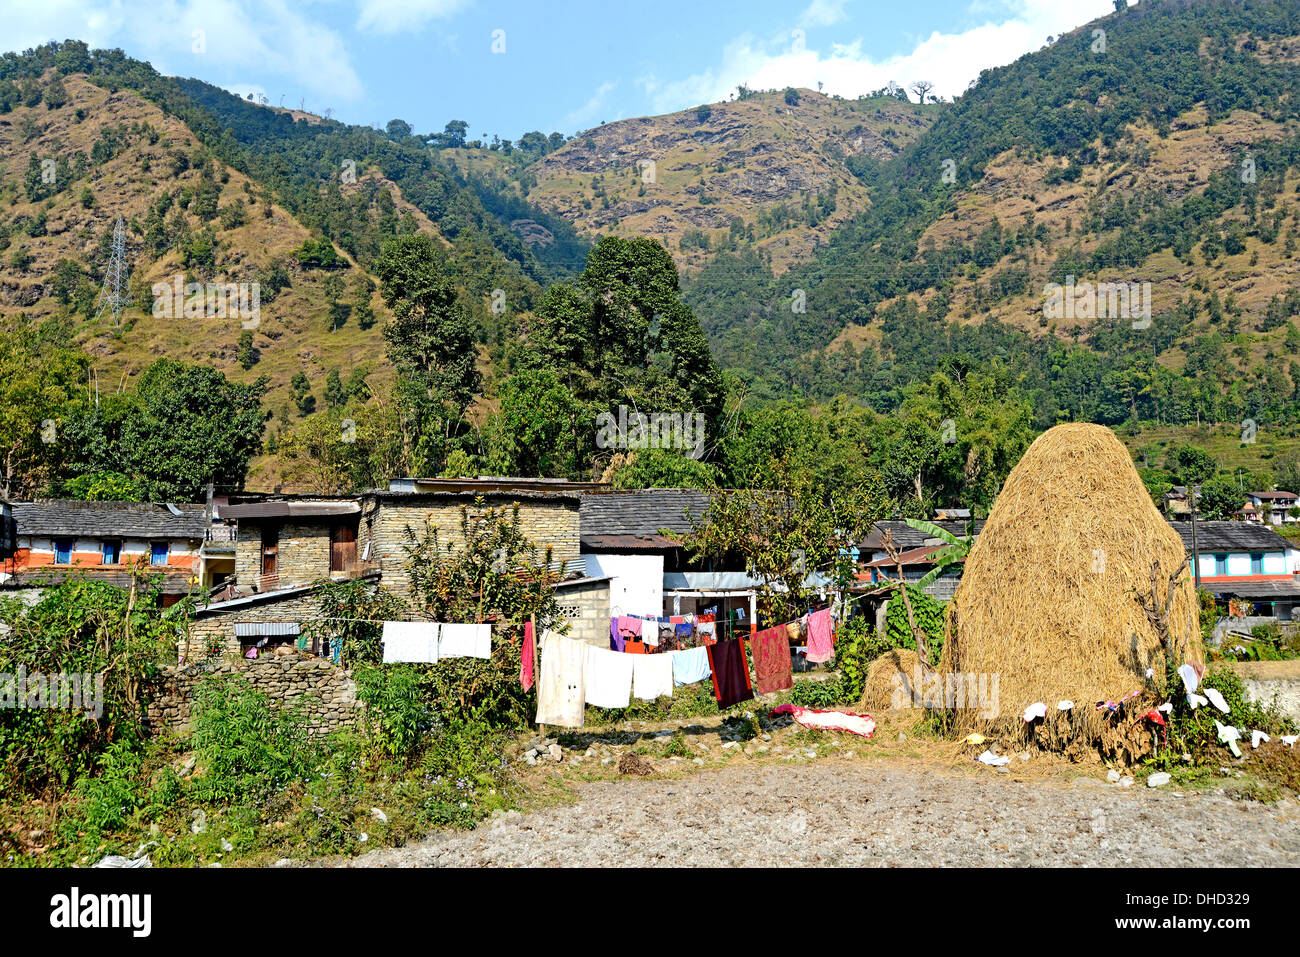 countryside haystack Pokhara valley Nepal - Stock Image